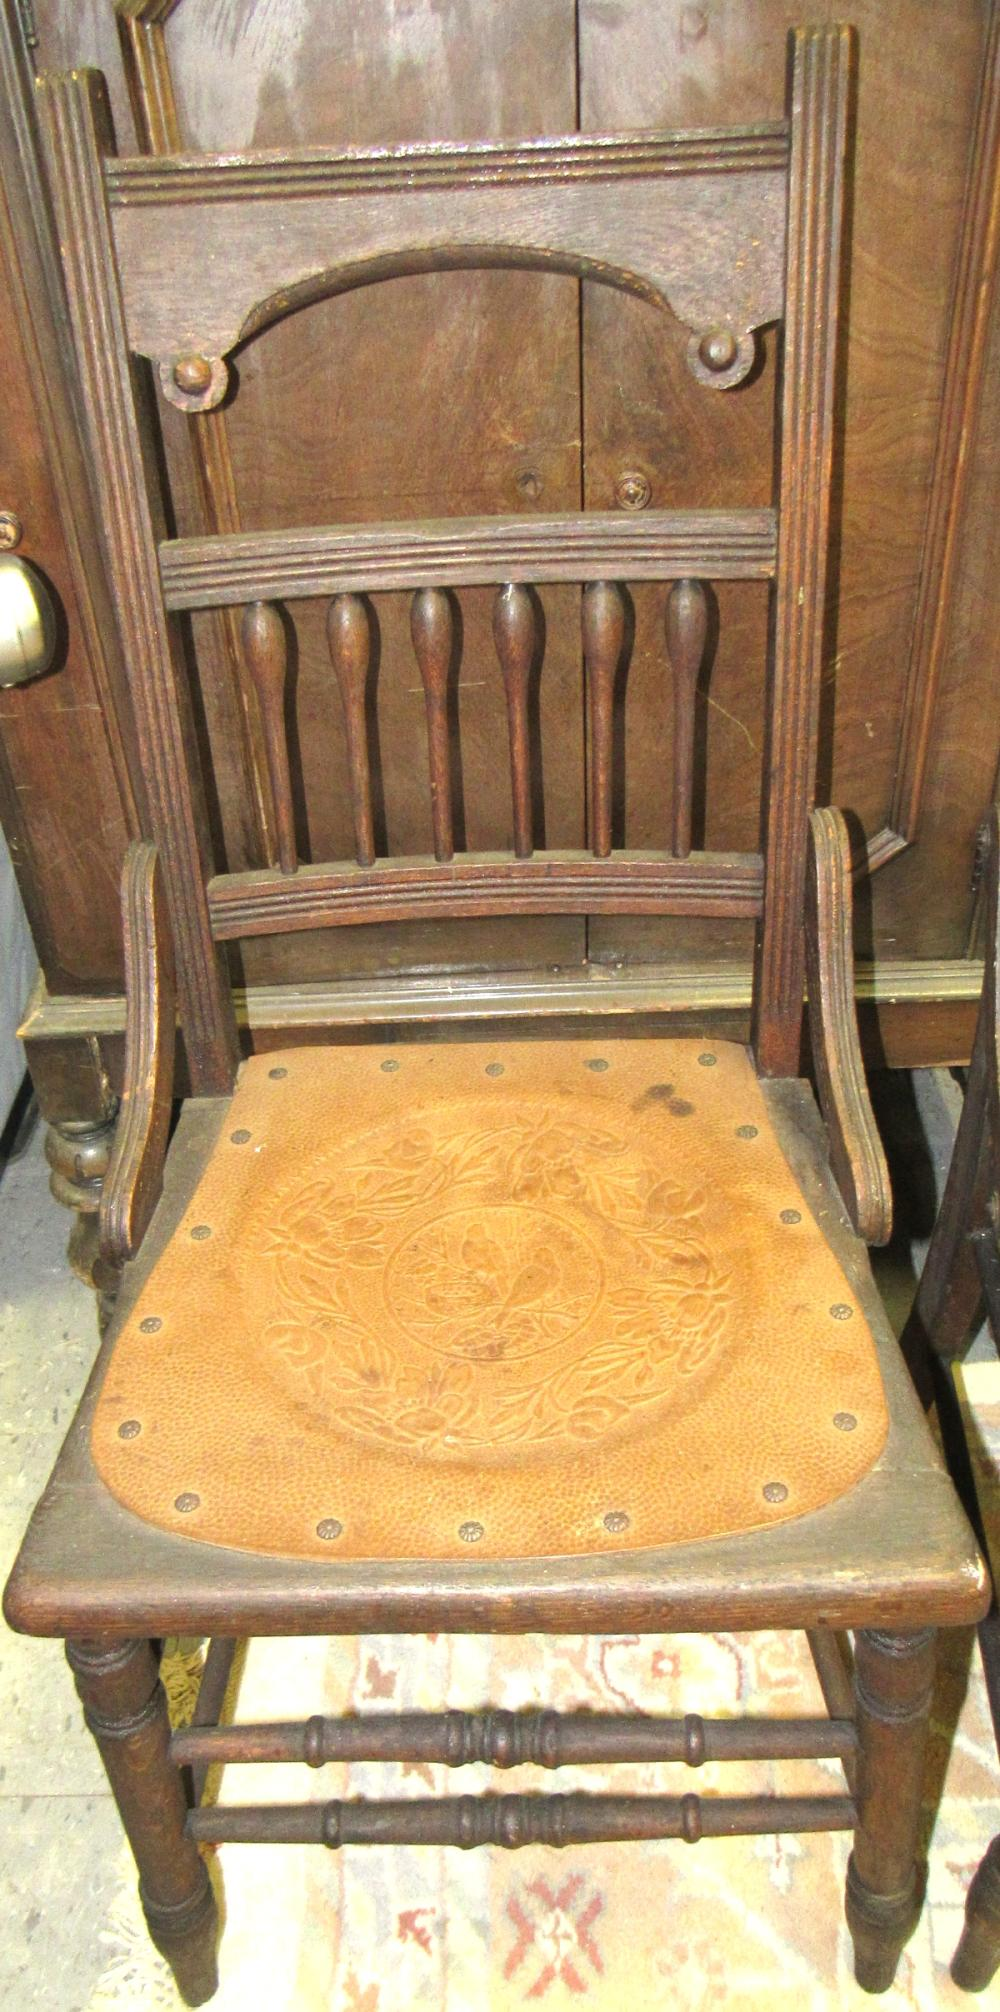 Lot 172: Set of Four 1800's Hip Hugger Armless Chairs, All Responsibility for Shipping will be the Successful Bidder. You must arrange for pickup directly or by a shipper within 7 days after sale.